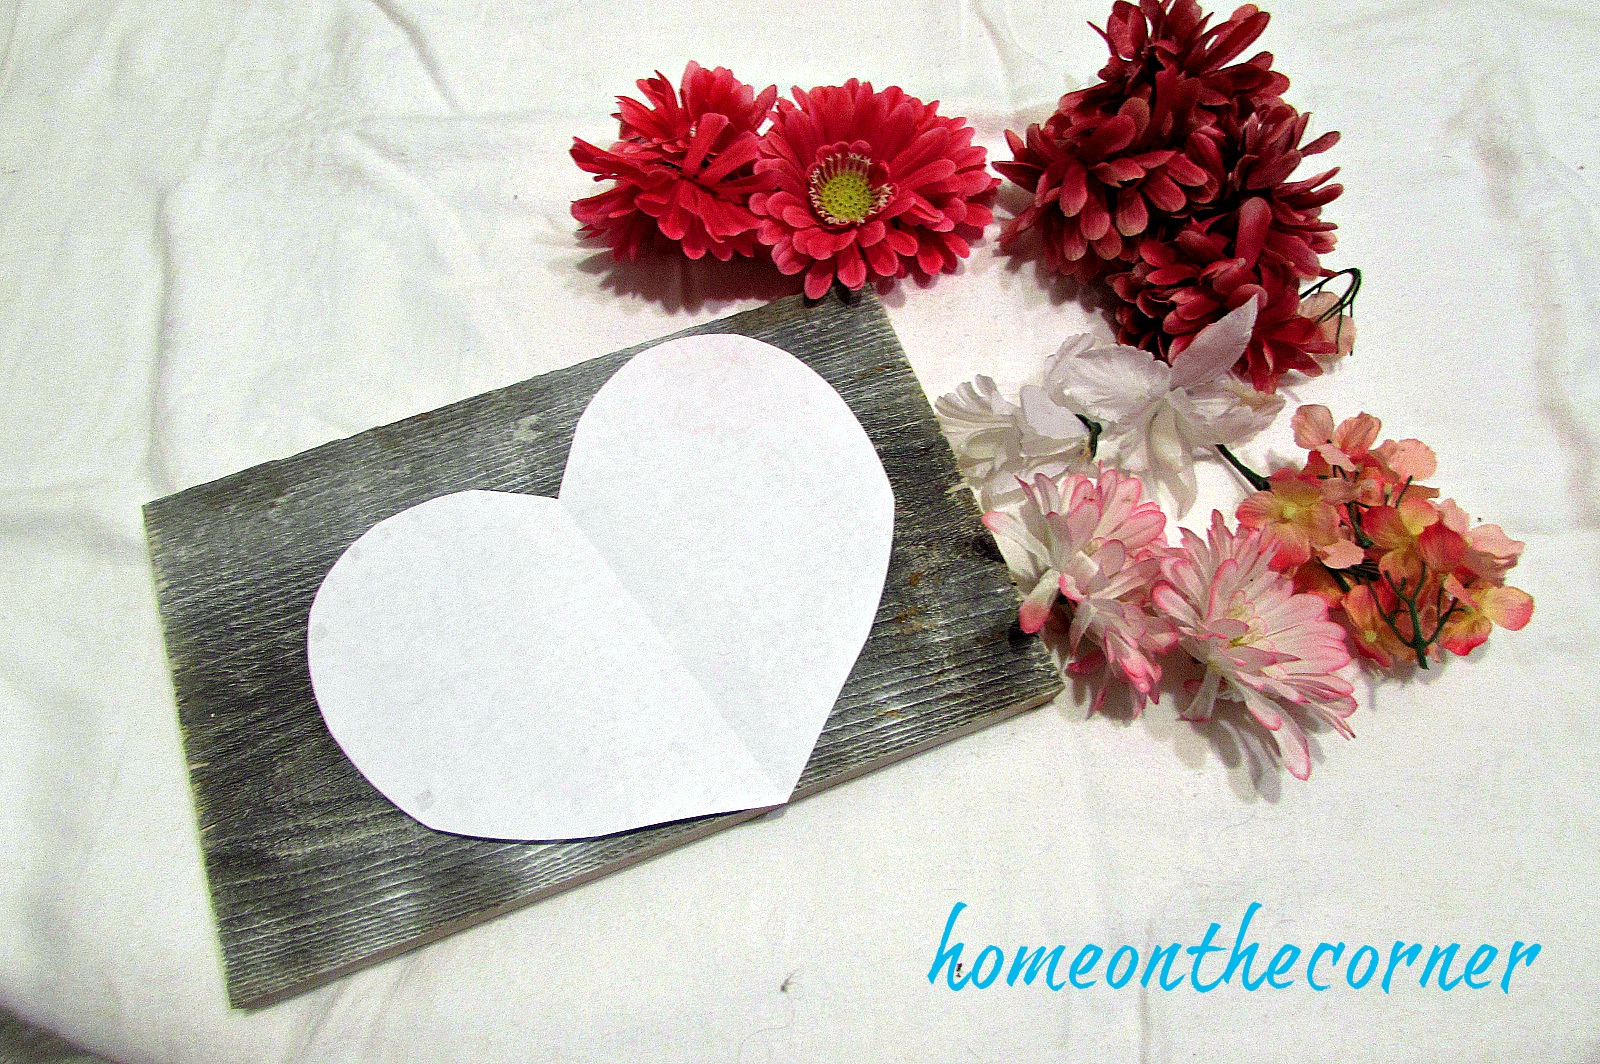 flower-heart-plaque-with-flowers